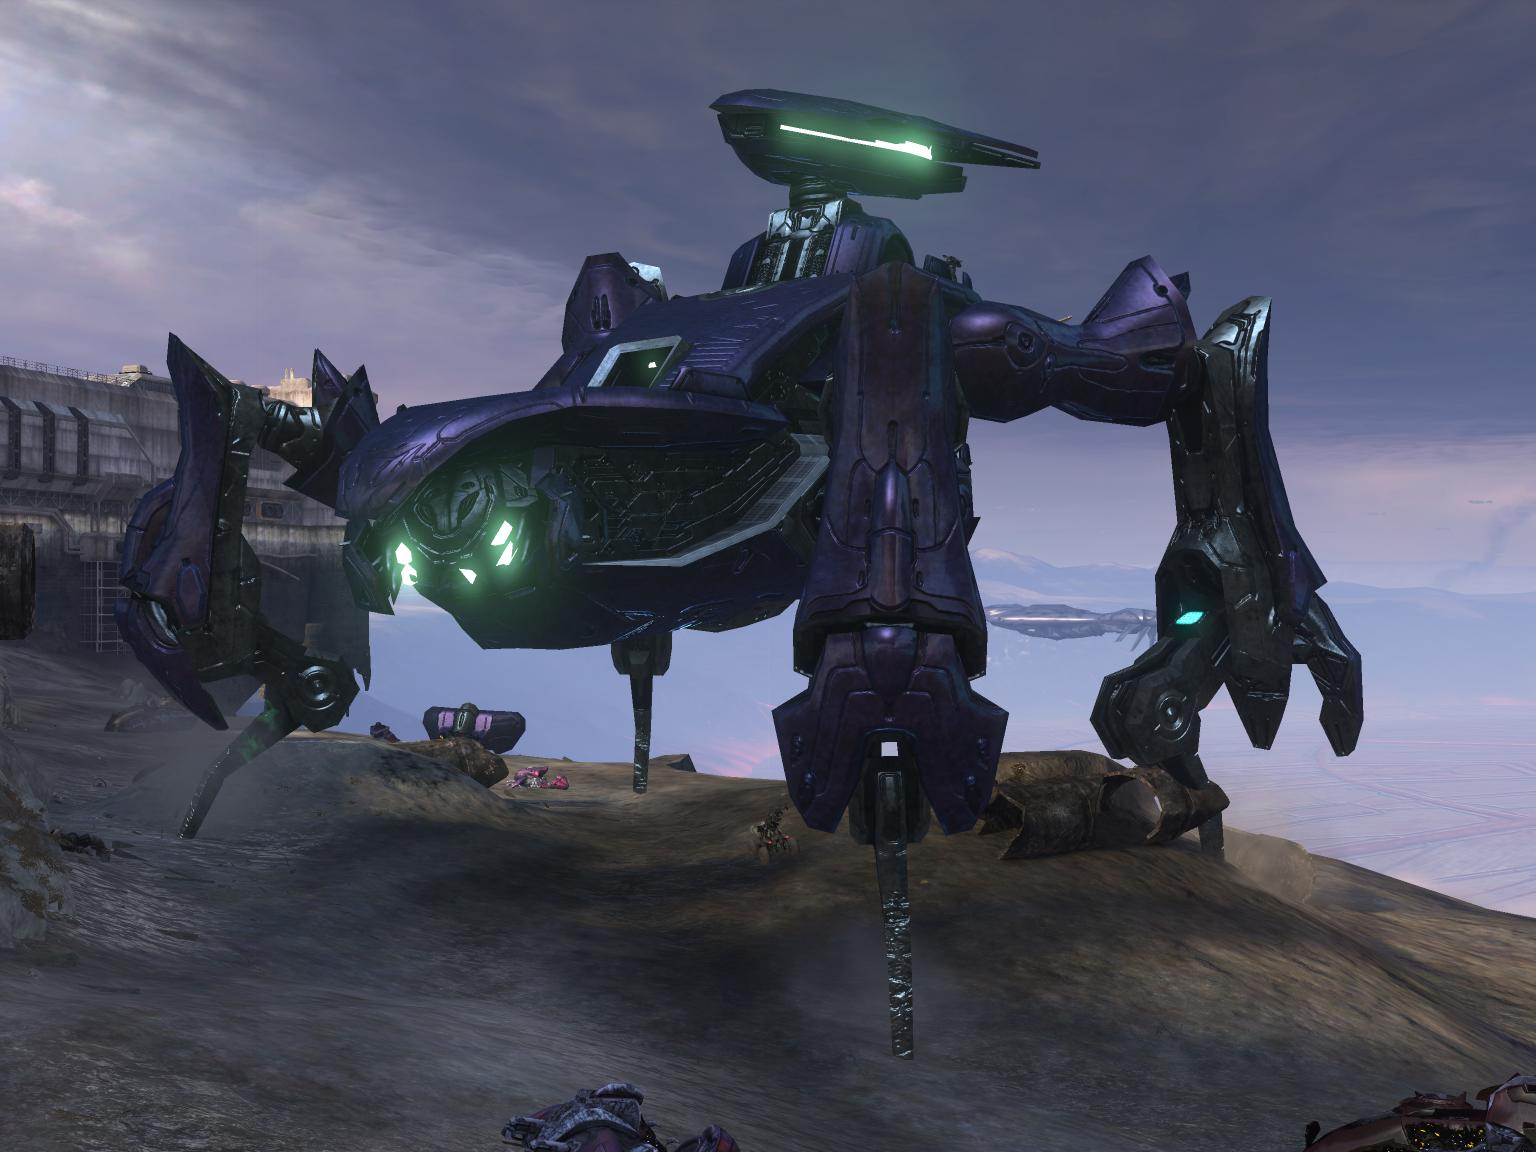 Halo 3 Flood Hunter Sc...